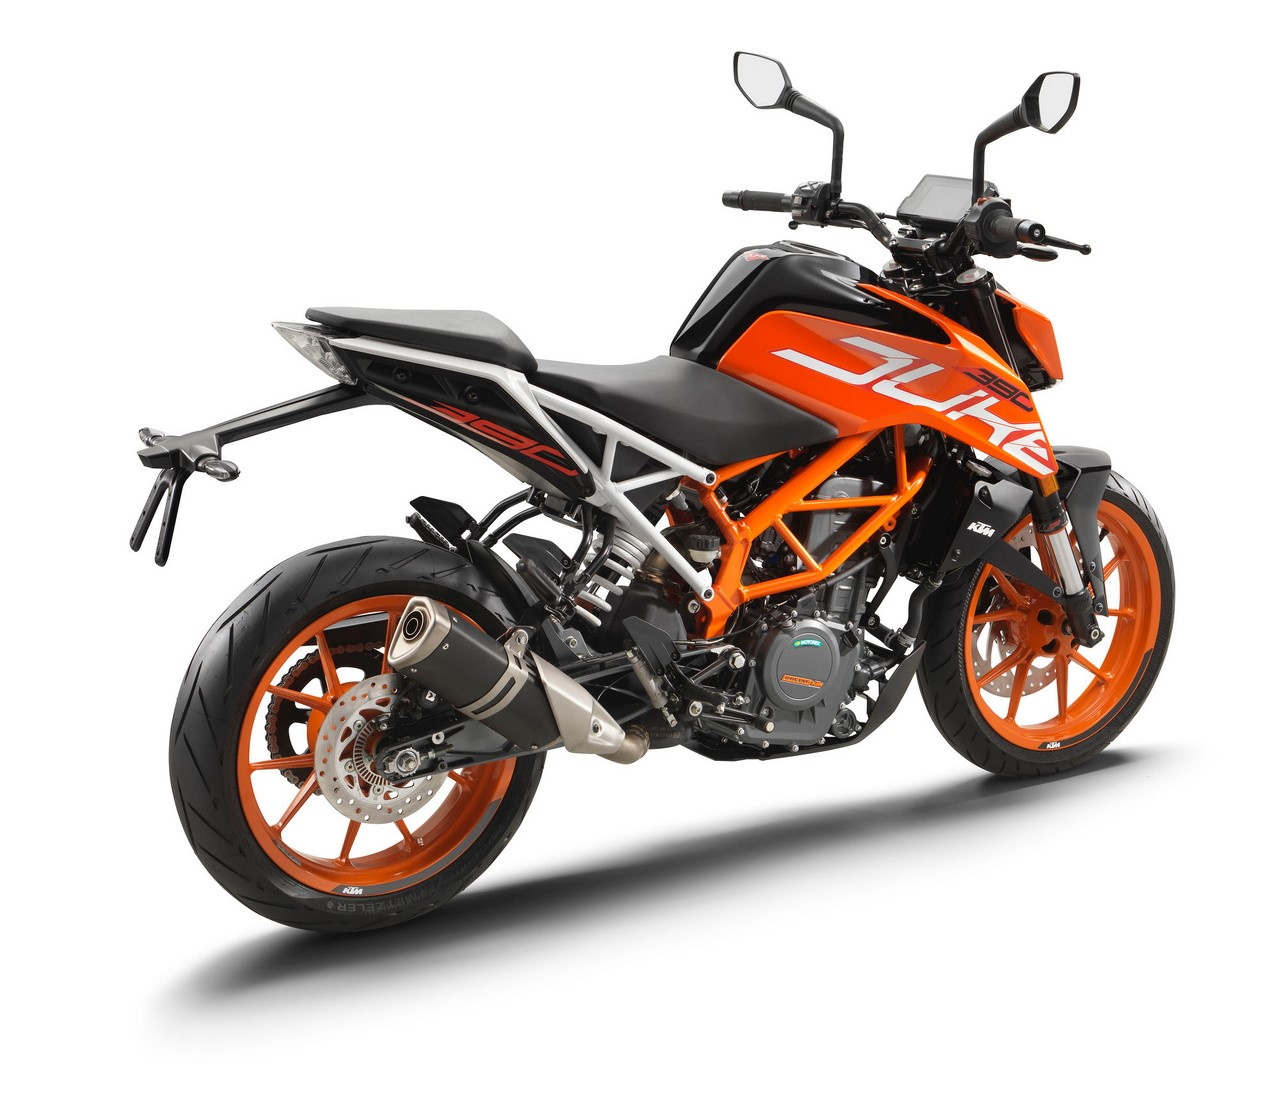 2017 KTM Duke 390 rear three quarters standstill